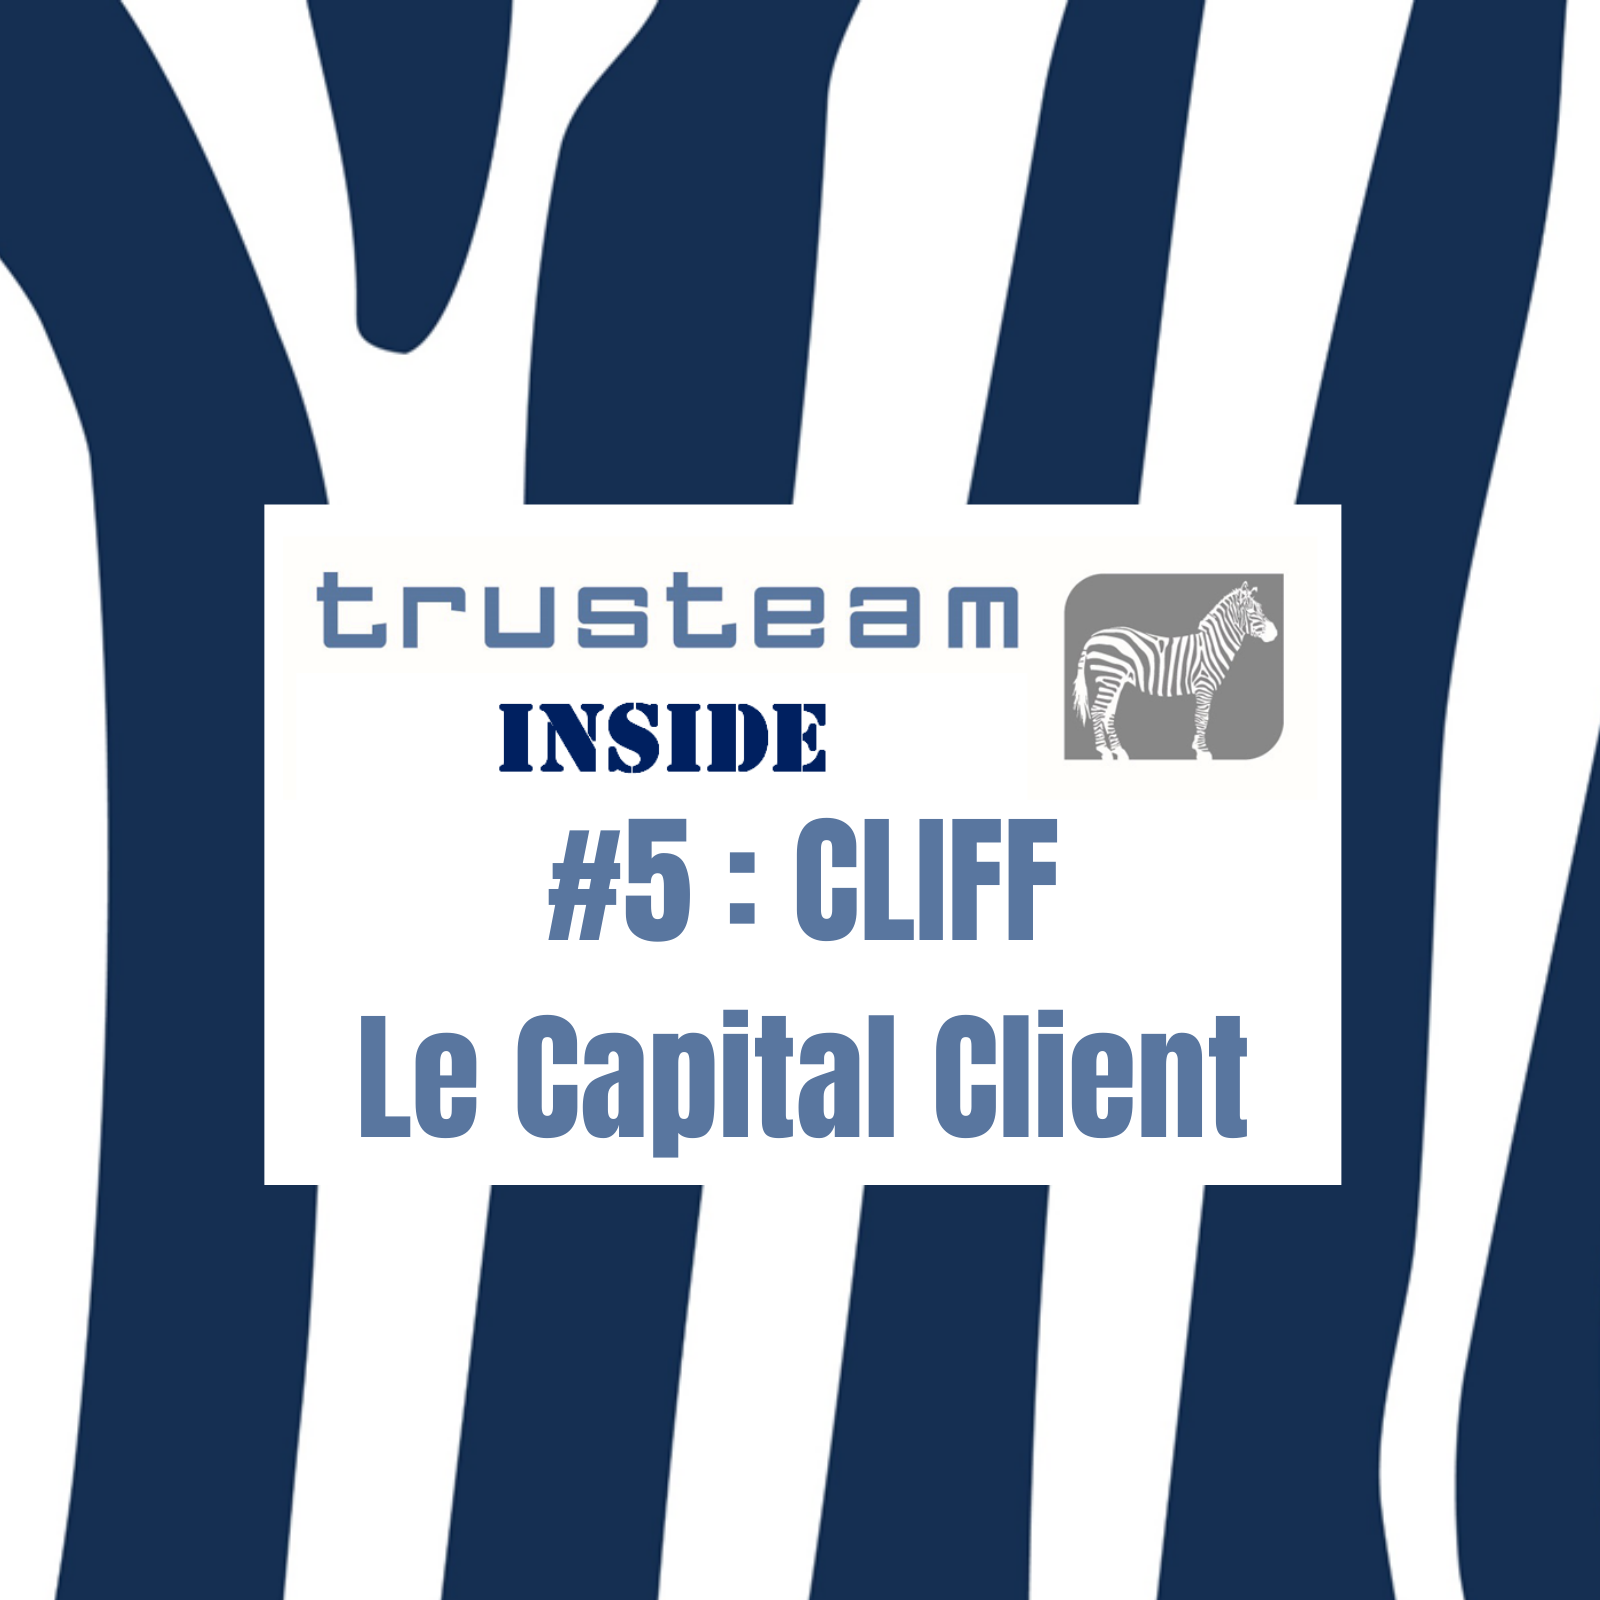 #5 CLIFF Le Capital Client